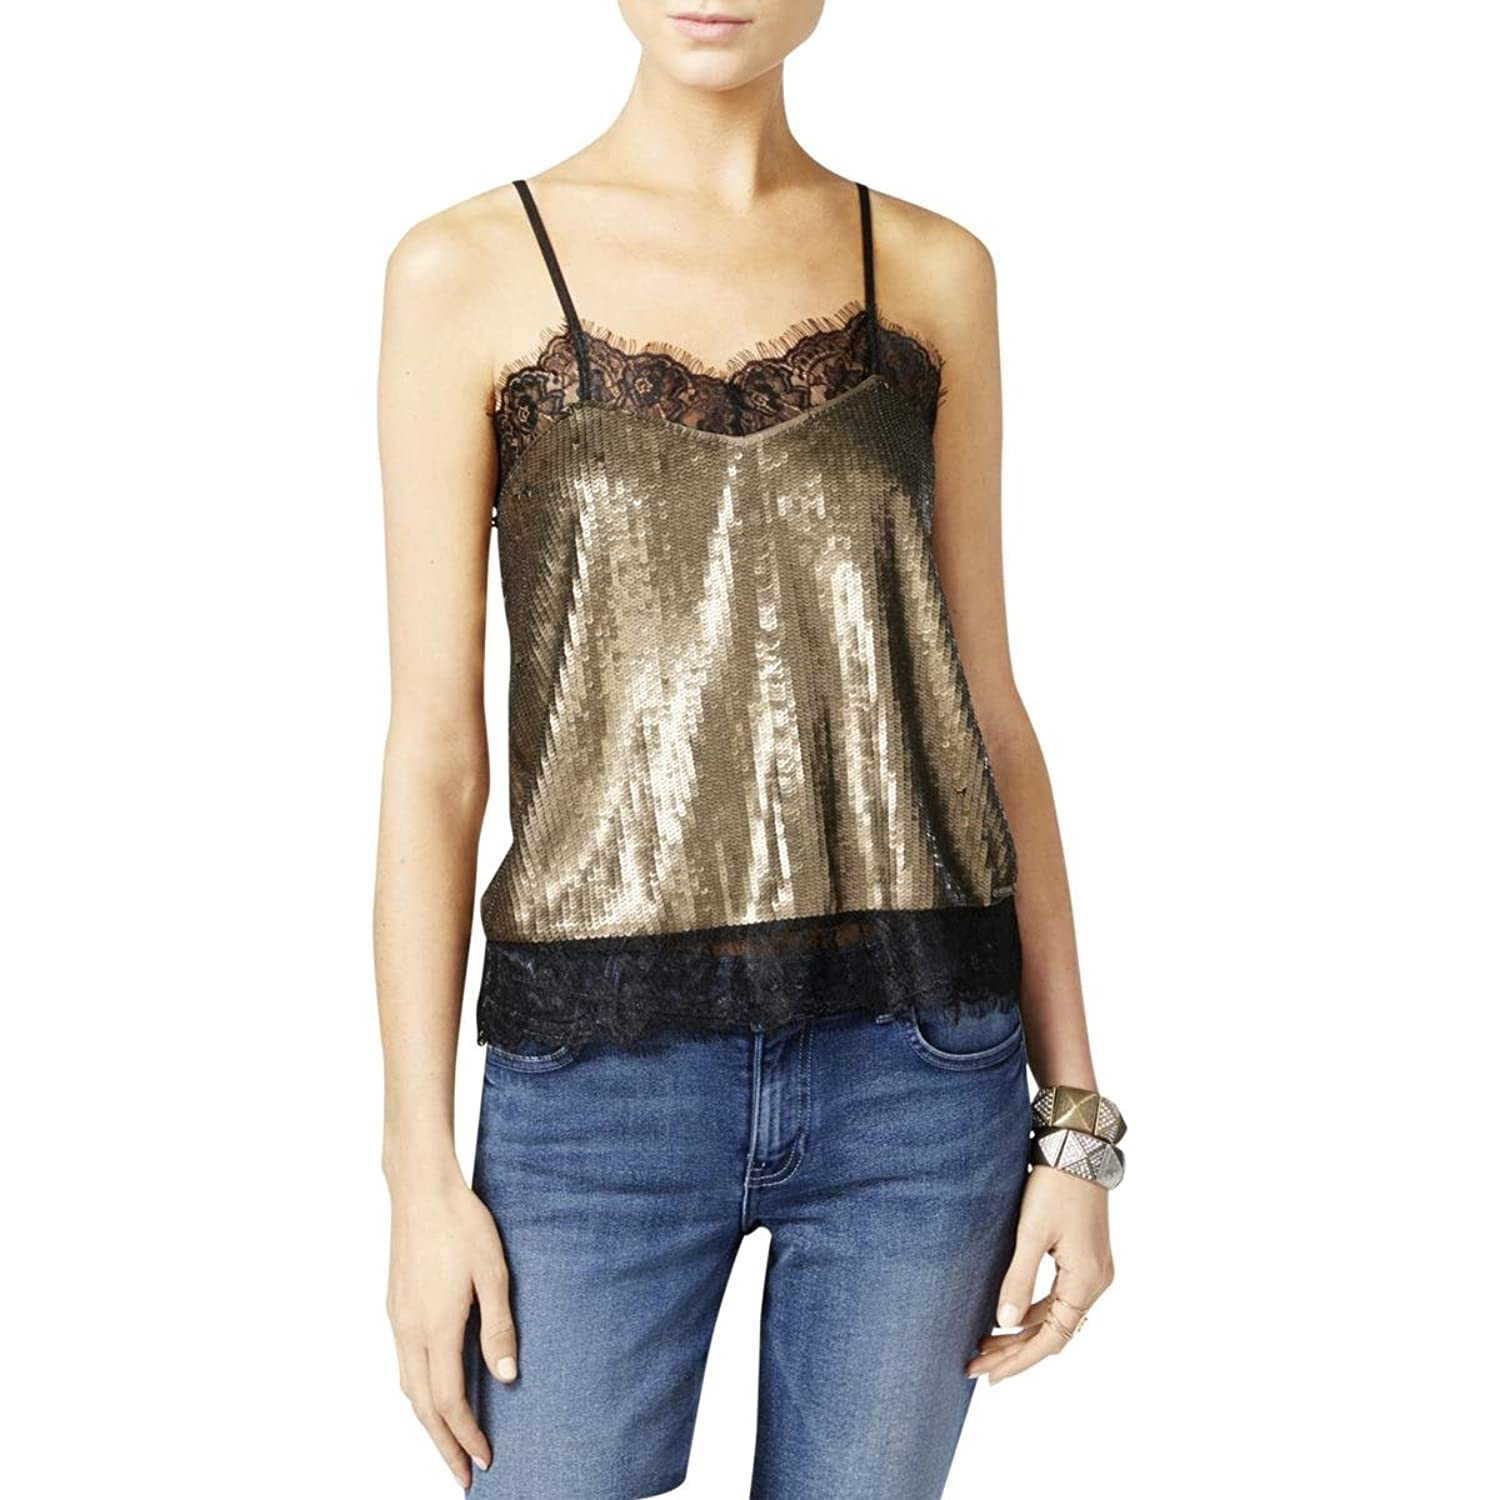 GUESS Womens Sequined Lace Trim Camisole Top